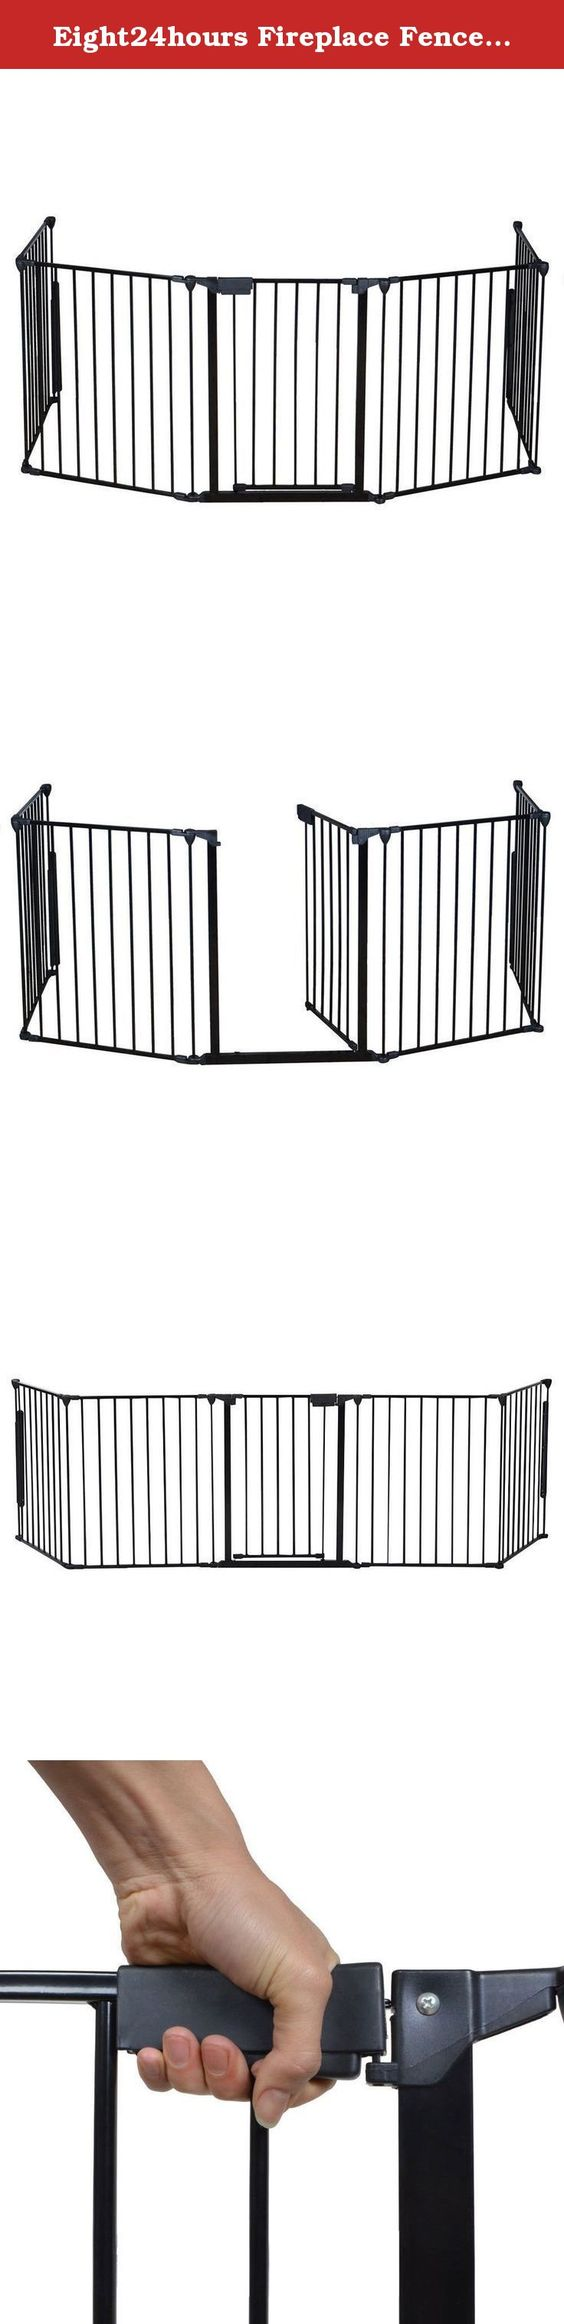 Eight24hours Fireplace Fence Baby Safety Fence Hearth Gate BBQ.